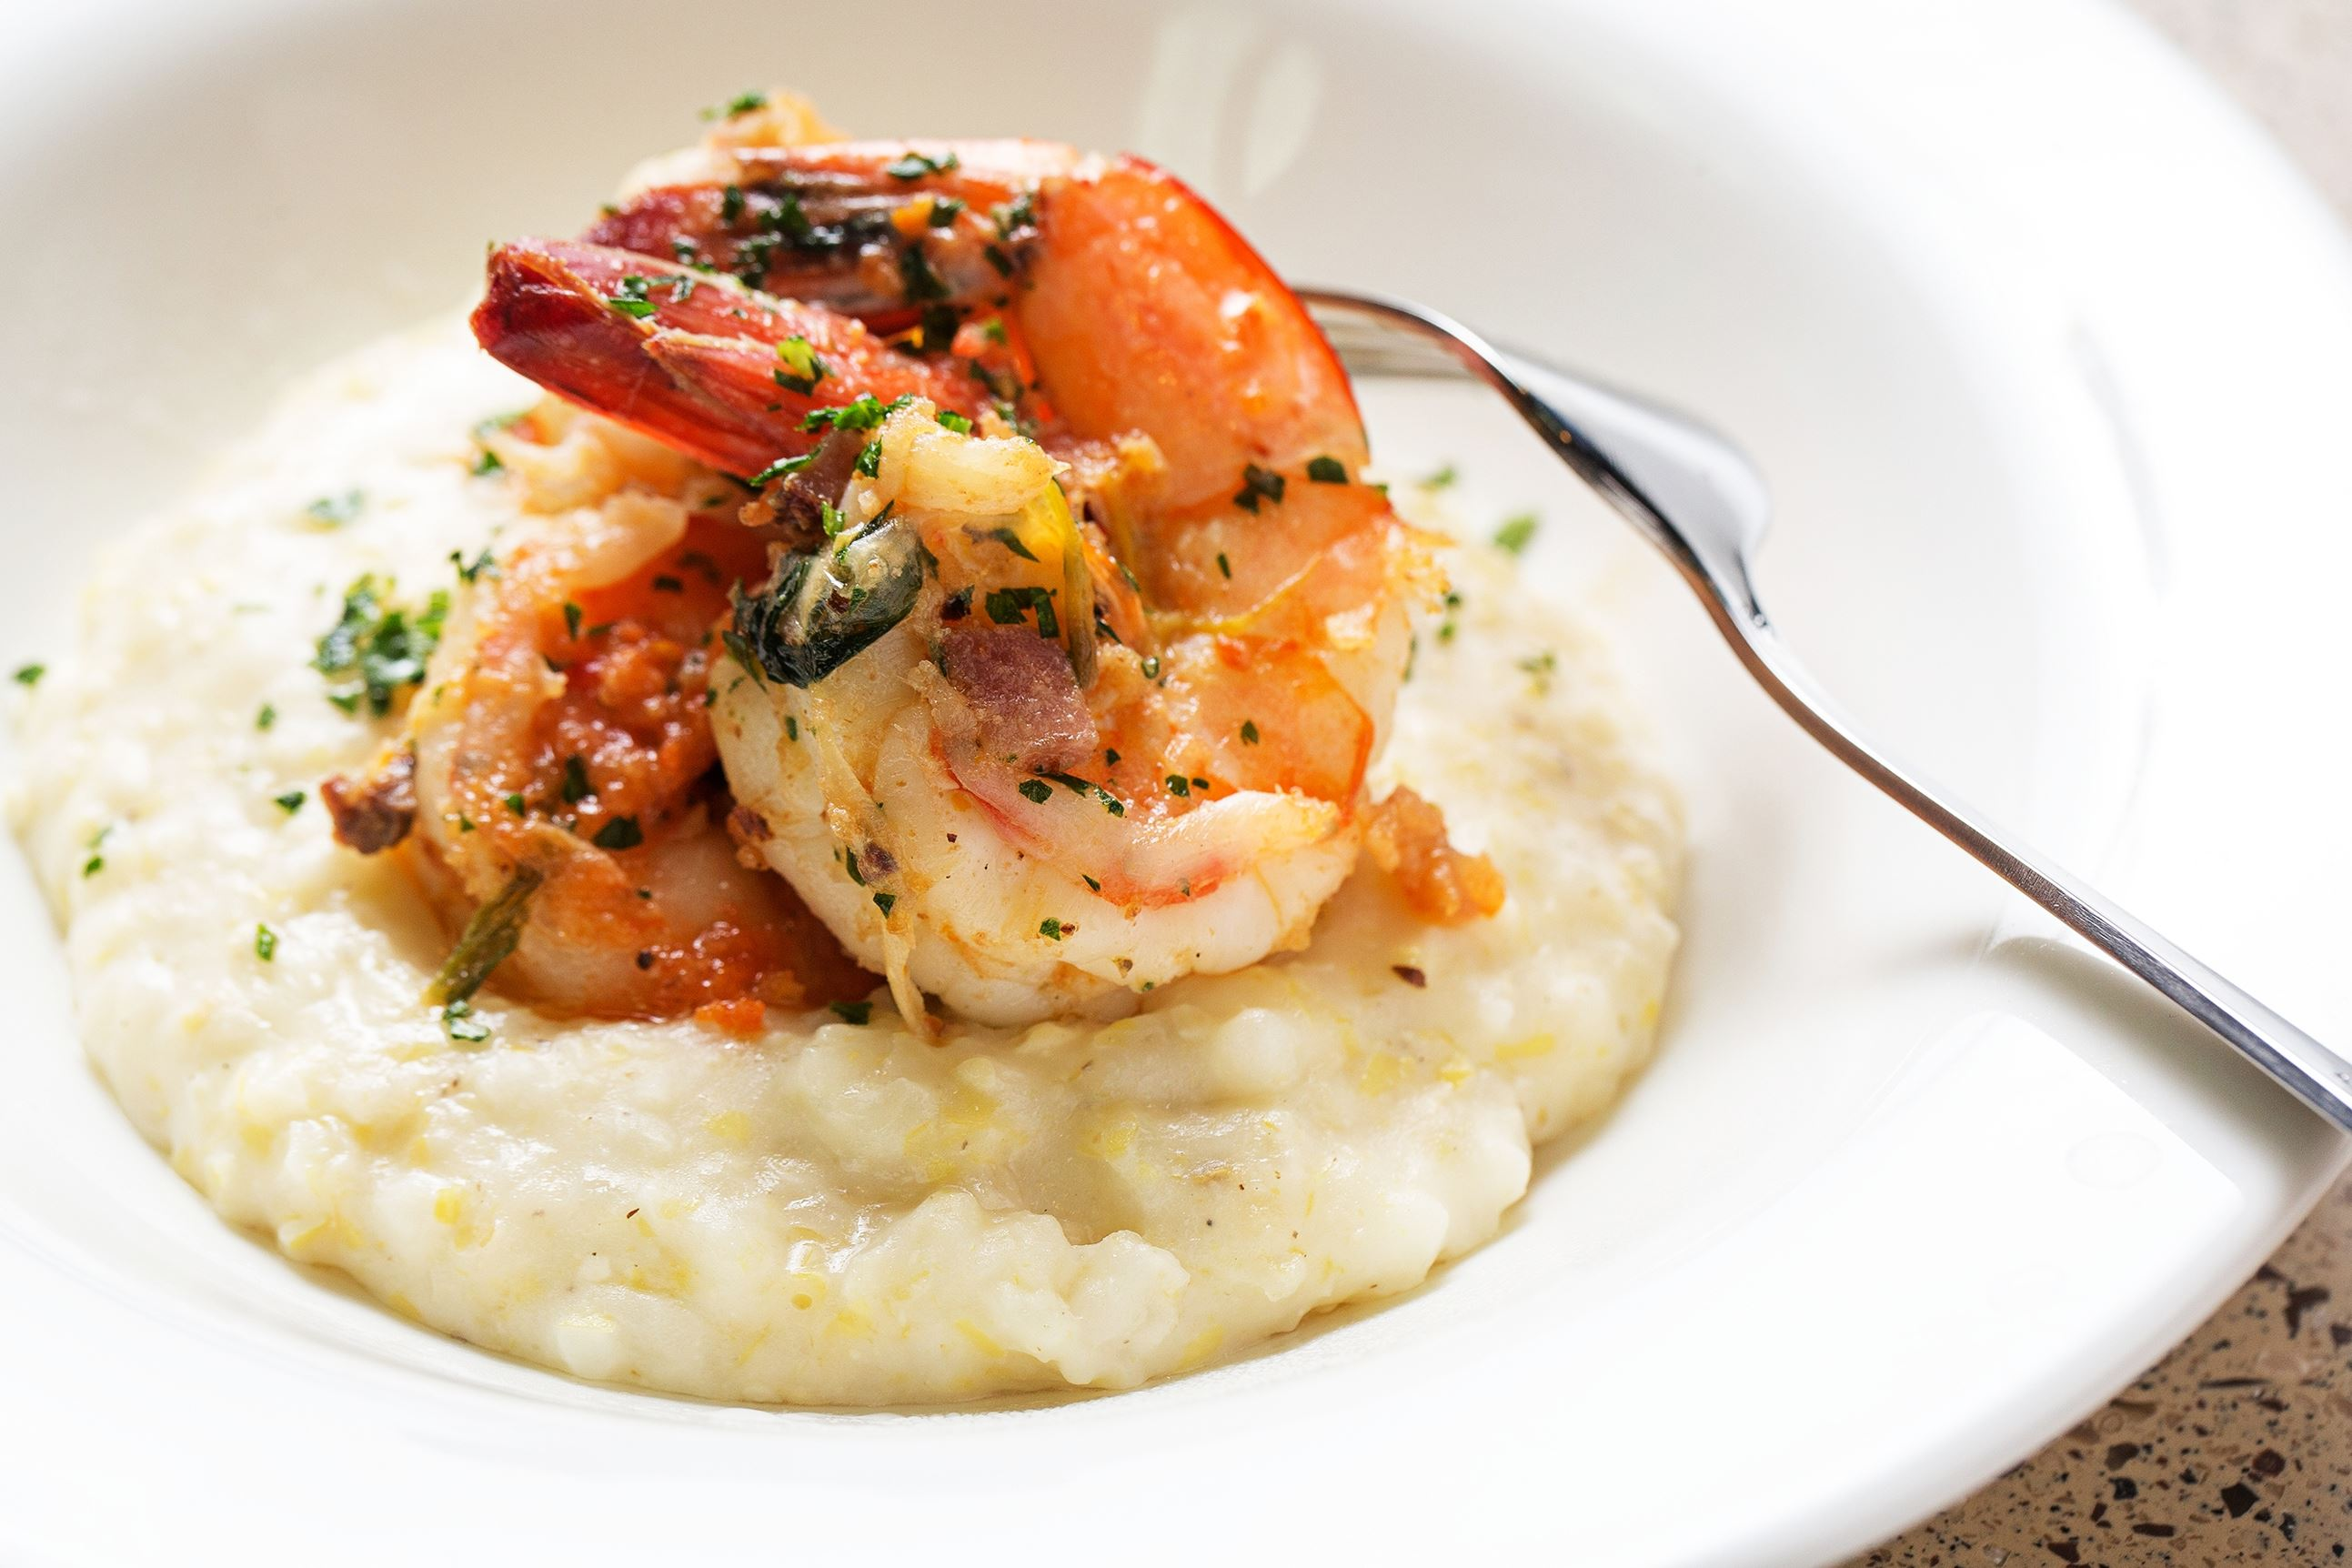 SWEETHOME2-1 Familiar favorites such as Shrimp and Grits are one the menu at the National Museum of African American History and Culture's Sweet Home Cafe.